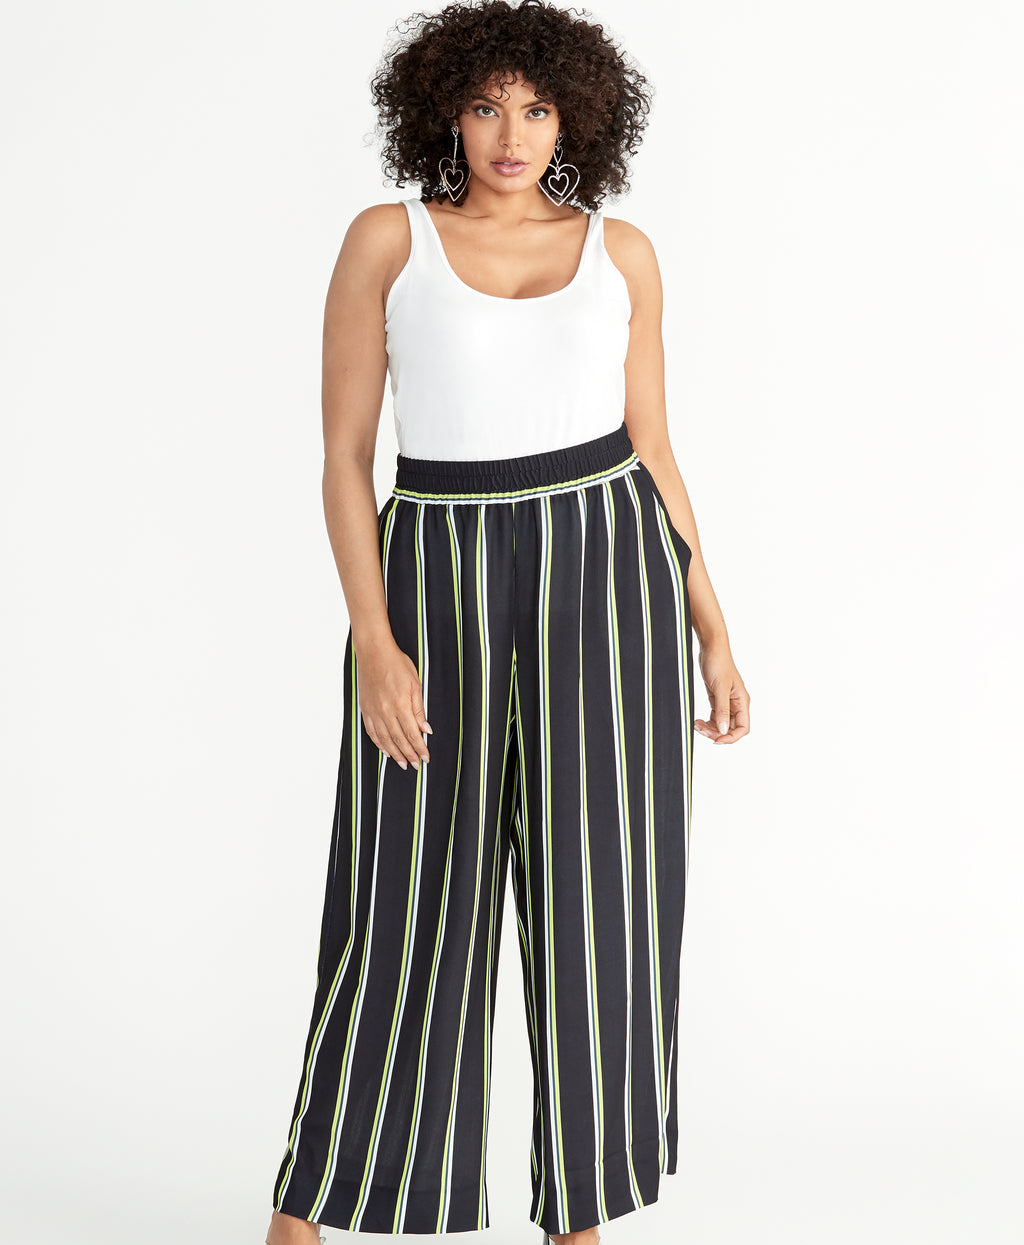 GOLDIE PULL ON PANT | GOLDIE PULL ON PANT